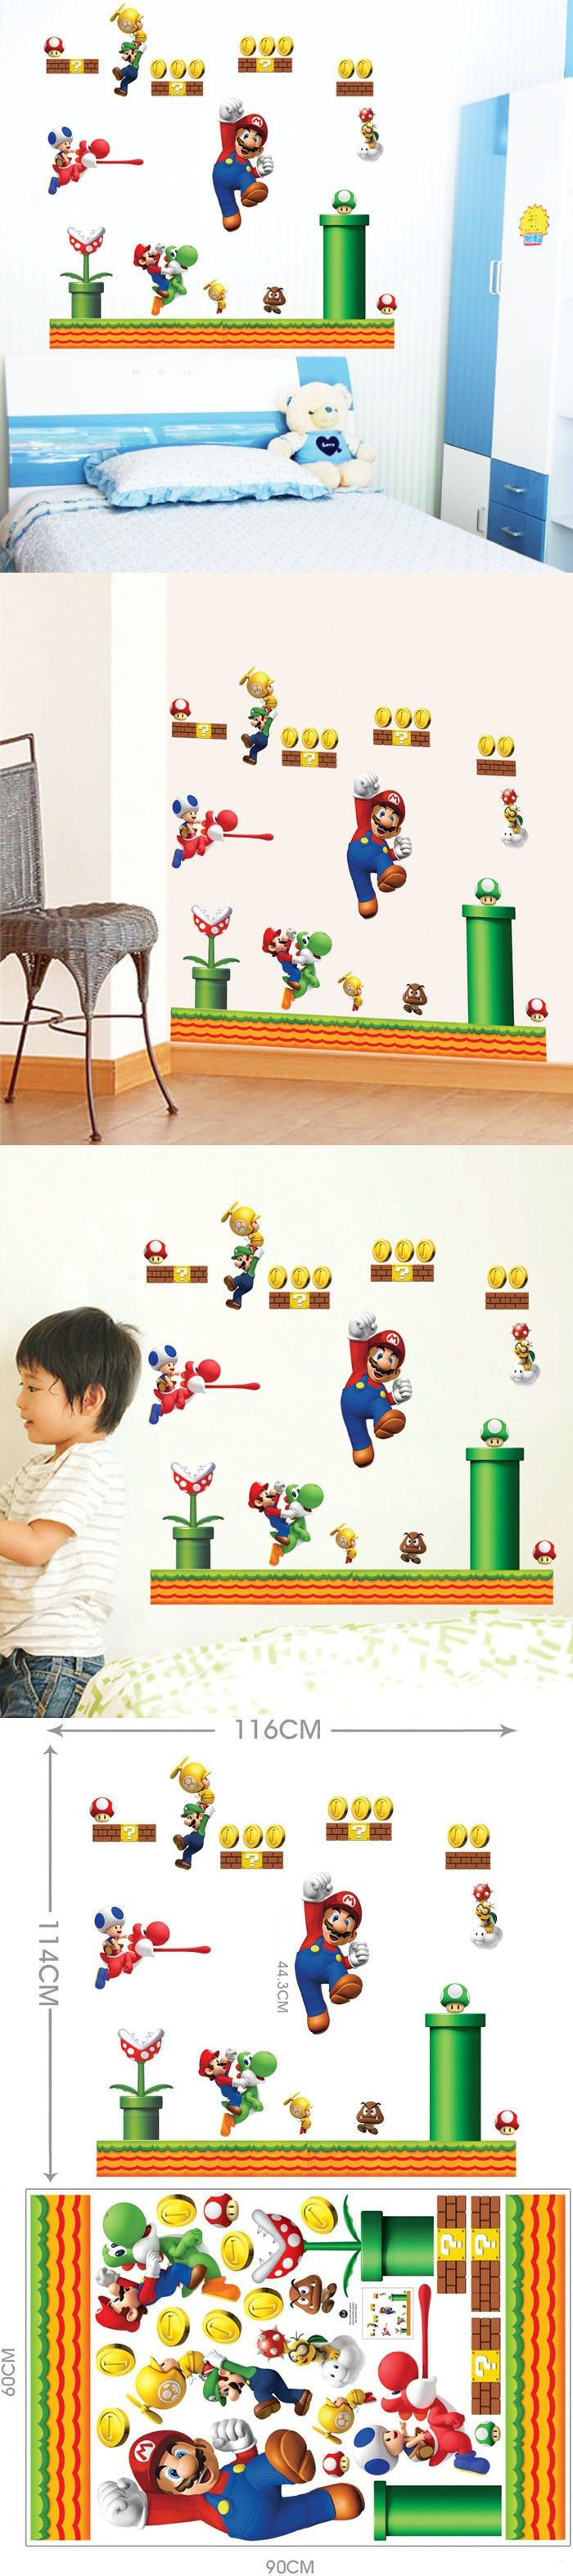 9 best video game pictures images on pinterest pictures video saturday monopoly diy home decor large super mario bros wall stickers fro kids rooms